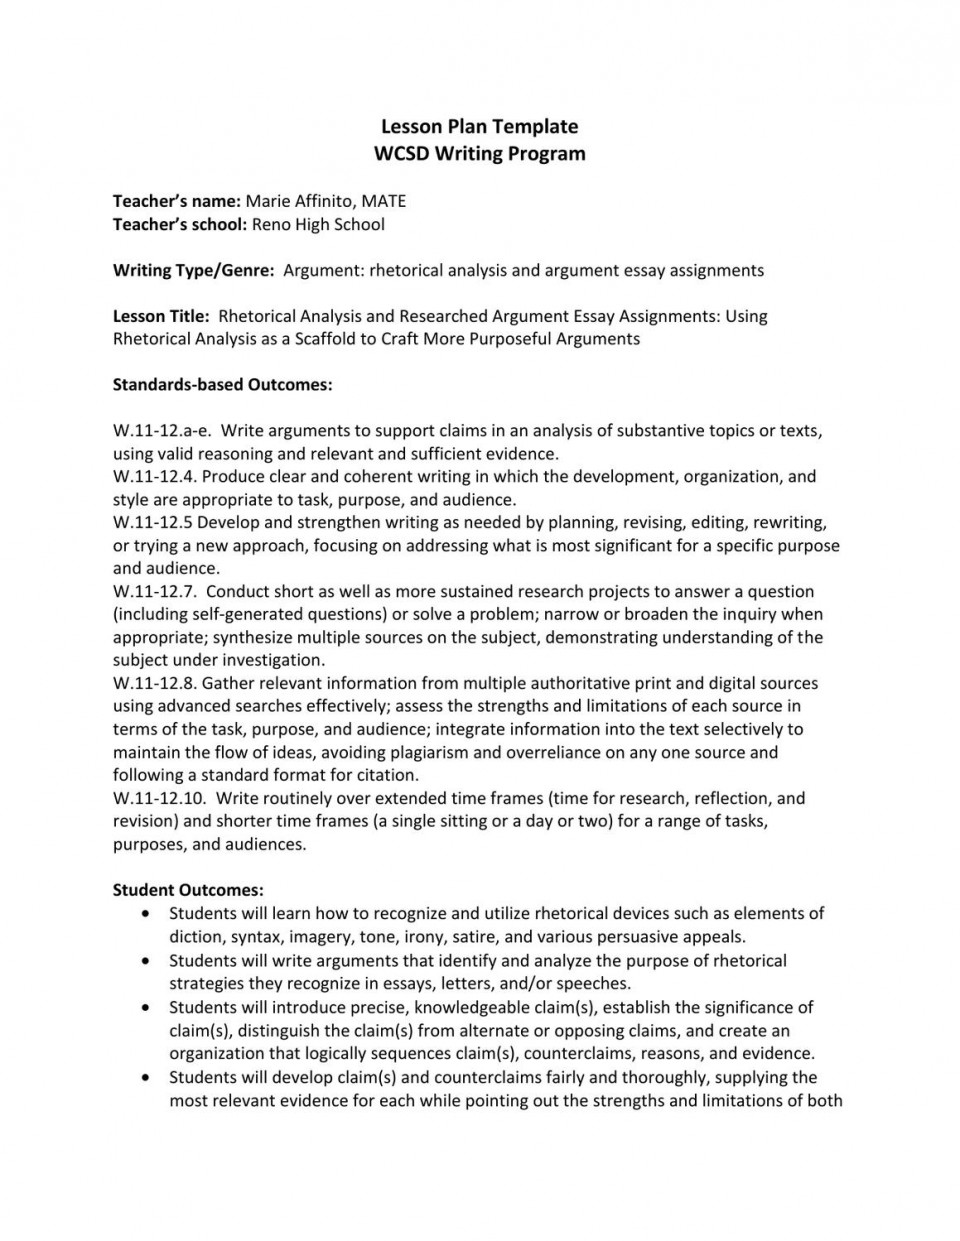 002 Essay Example Page 1 Why Do Authors Use Rhetorical Devices In Frightening Essays Brainly 960